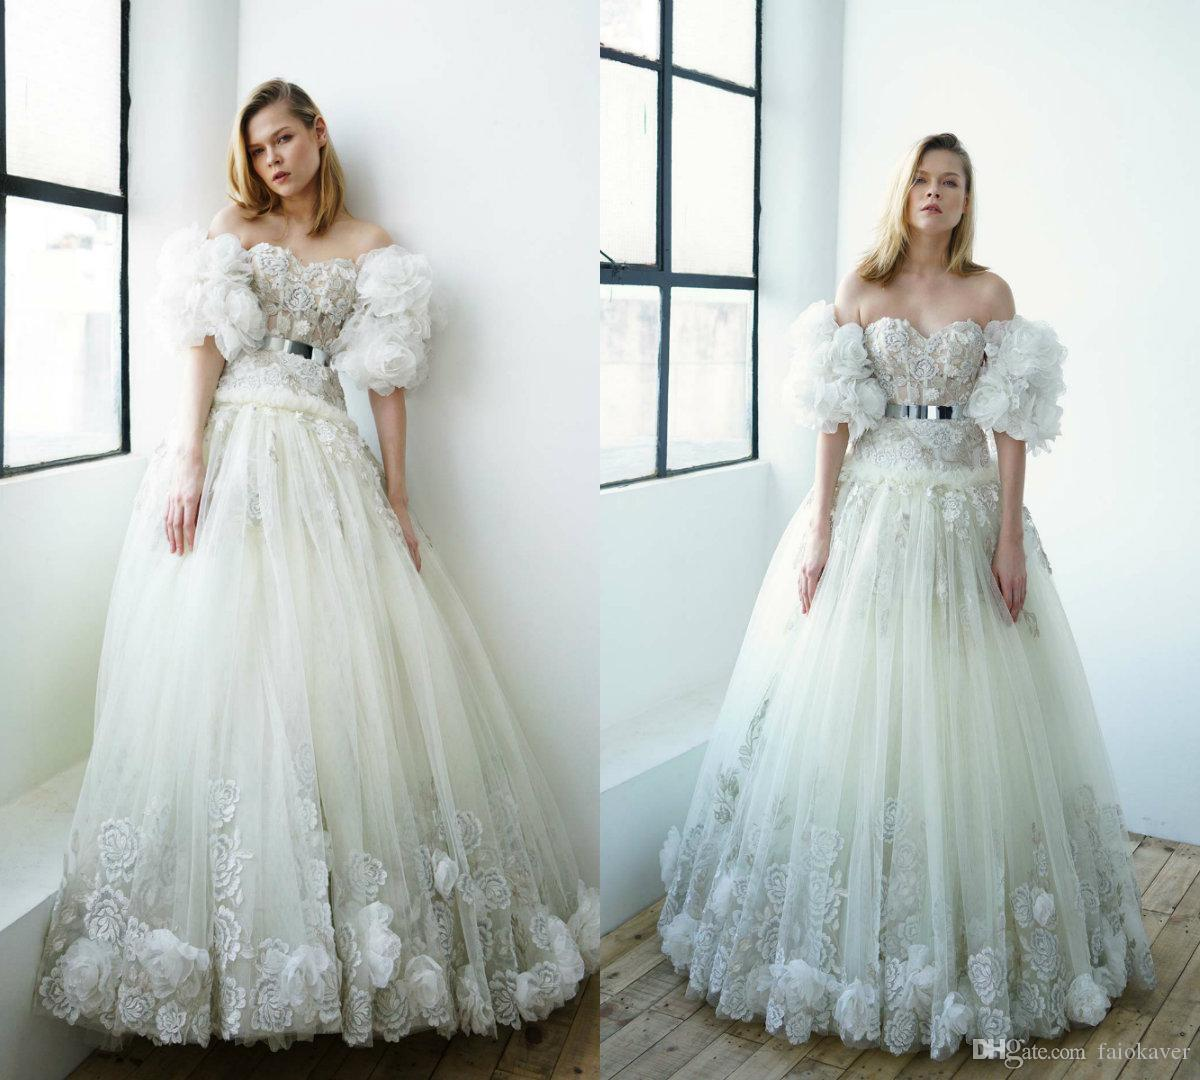 Flower Prom Dresses 2019 Full Lace Appliqued A Line Short Sleeves Sweetheart Evening Gowns Floor Length Fairy Party Dress